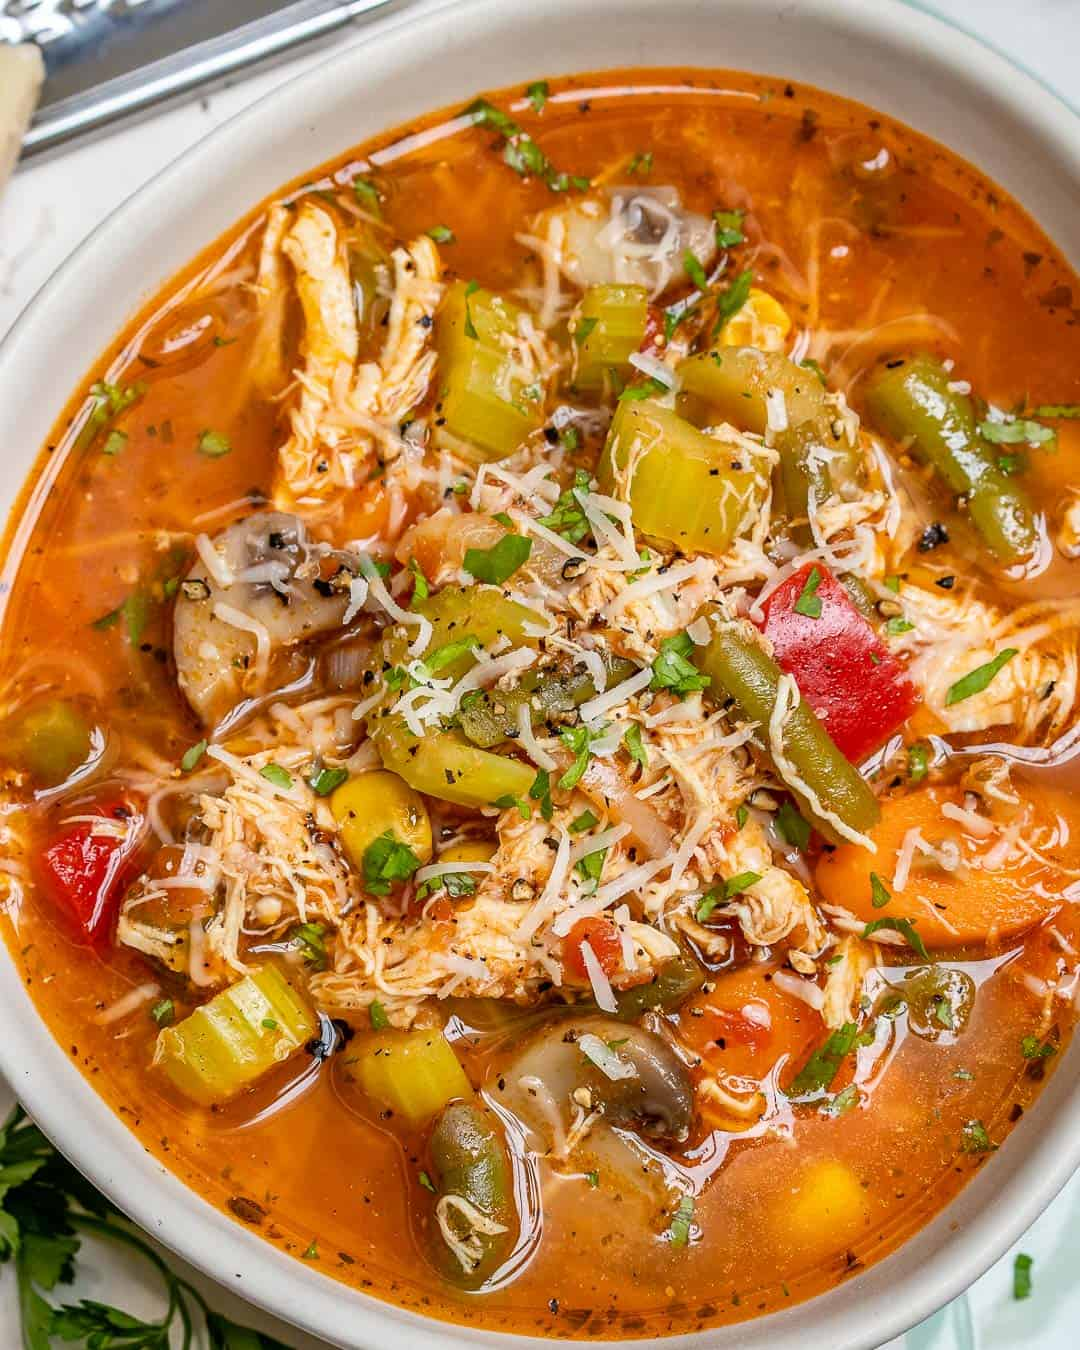 vegetable soup recipe with shredded chicken